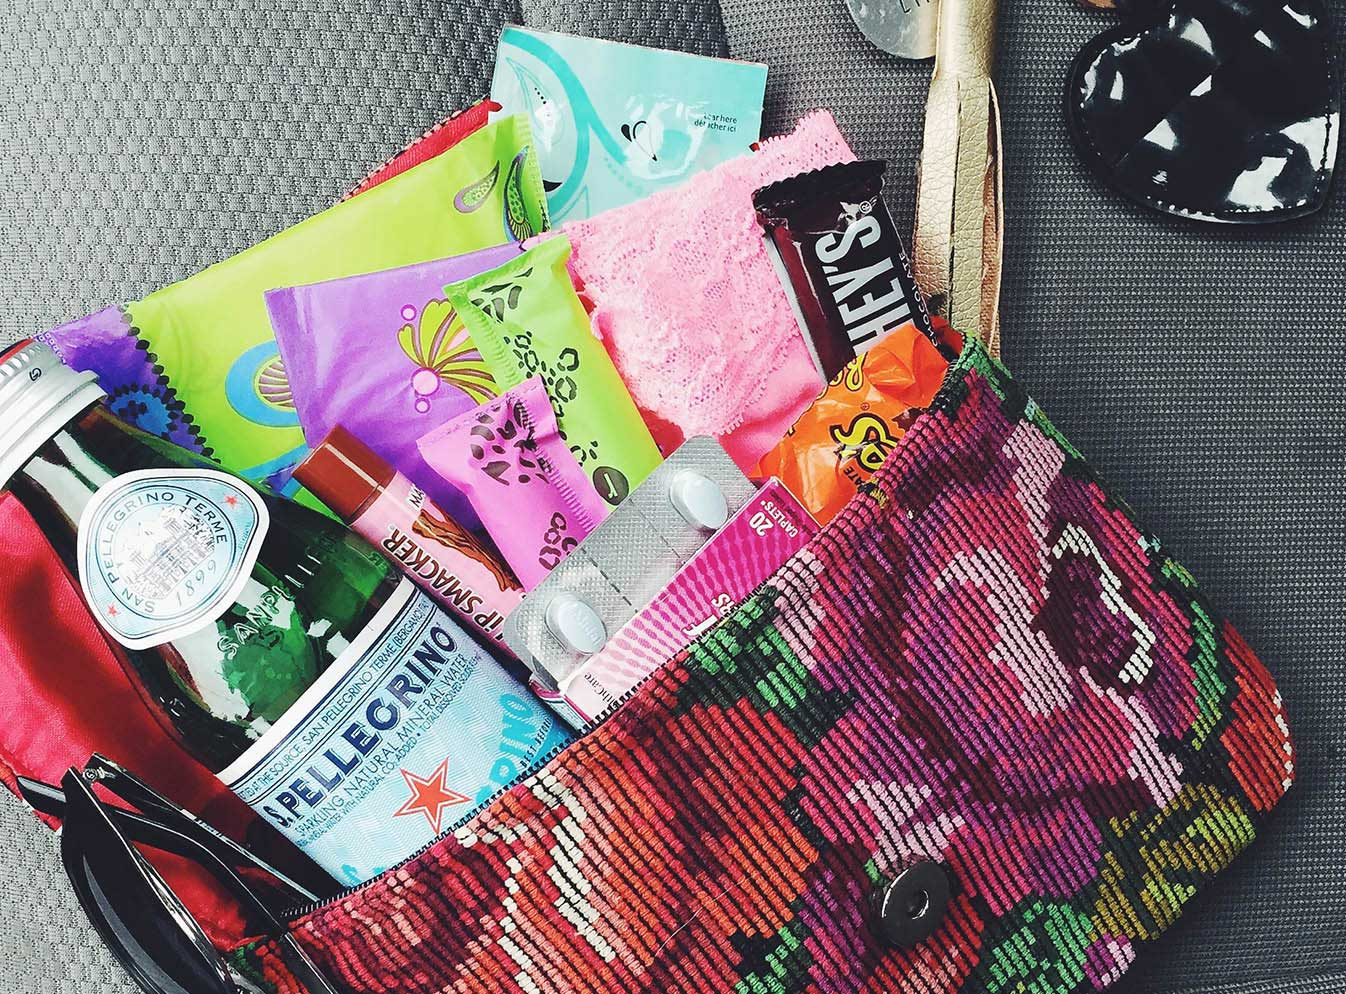 Purse with water, chocolate, liners, tampons